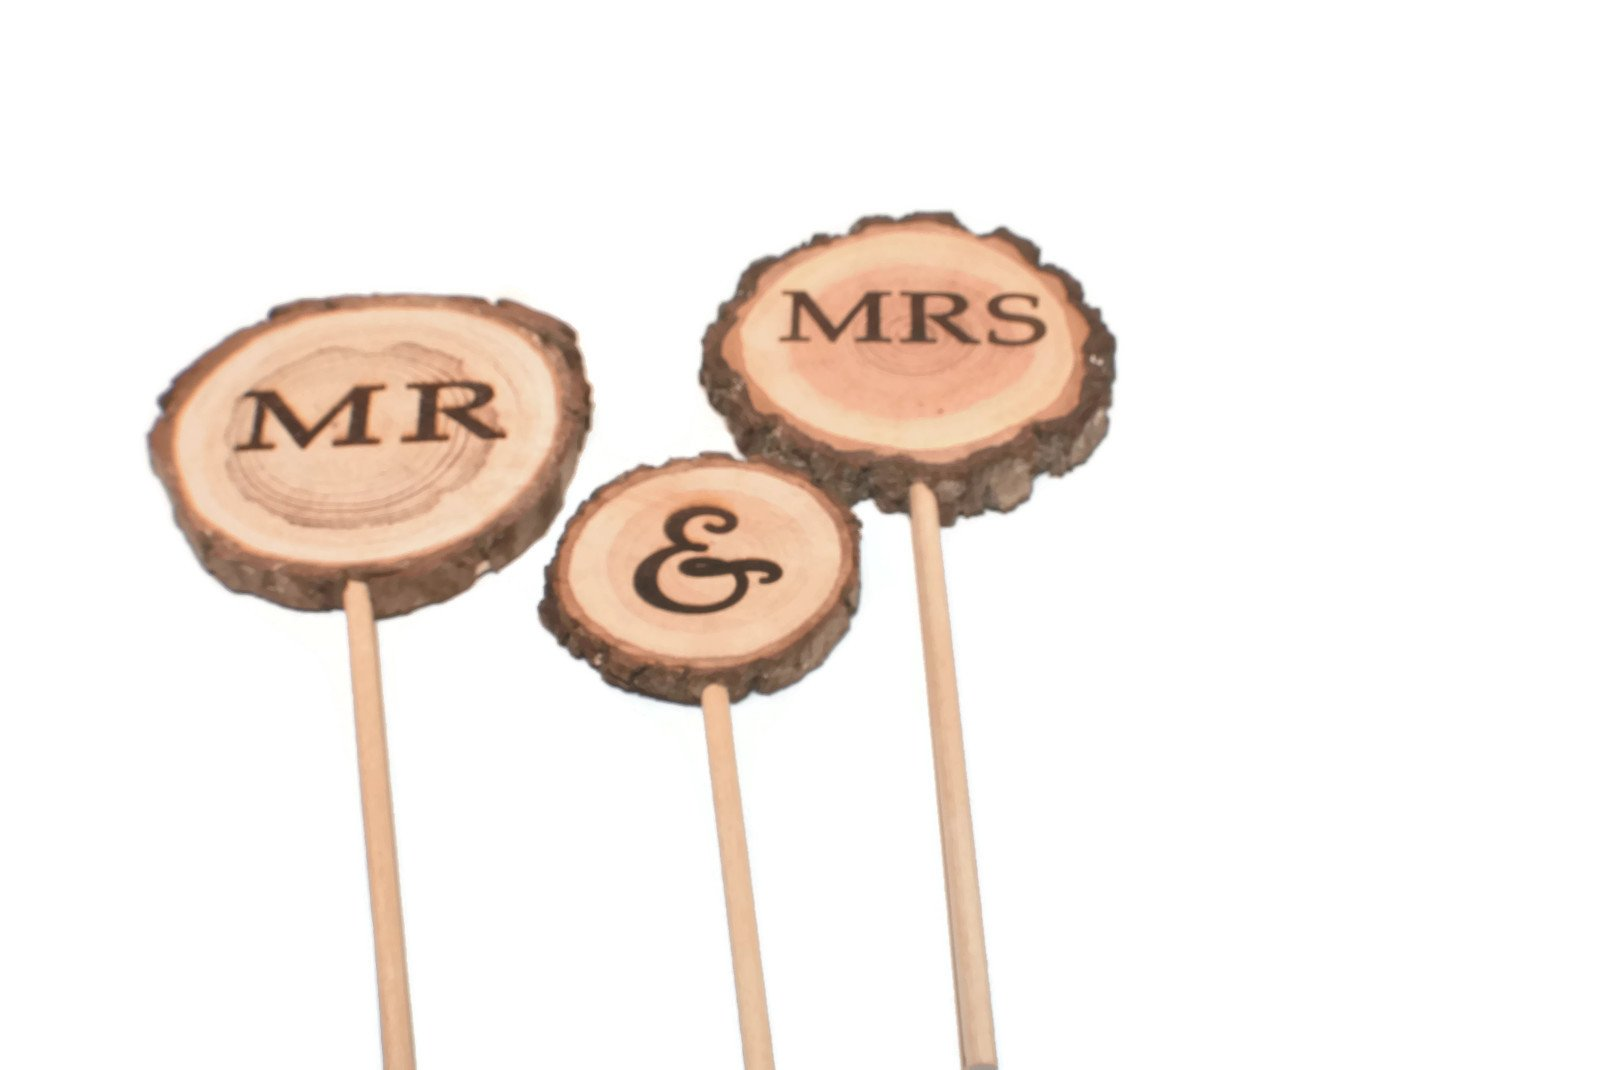 Mr & Mrs Rustic Wedding Cake topper 3 piece set, wood slice cake topper by OzarkCraftWood (Image #1)